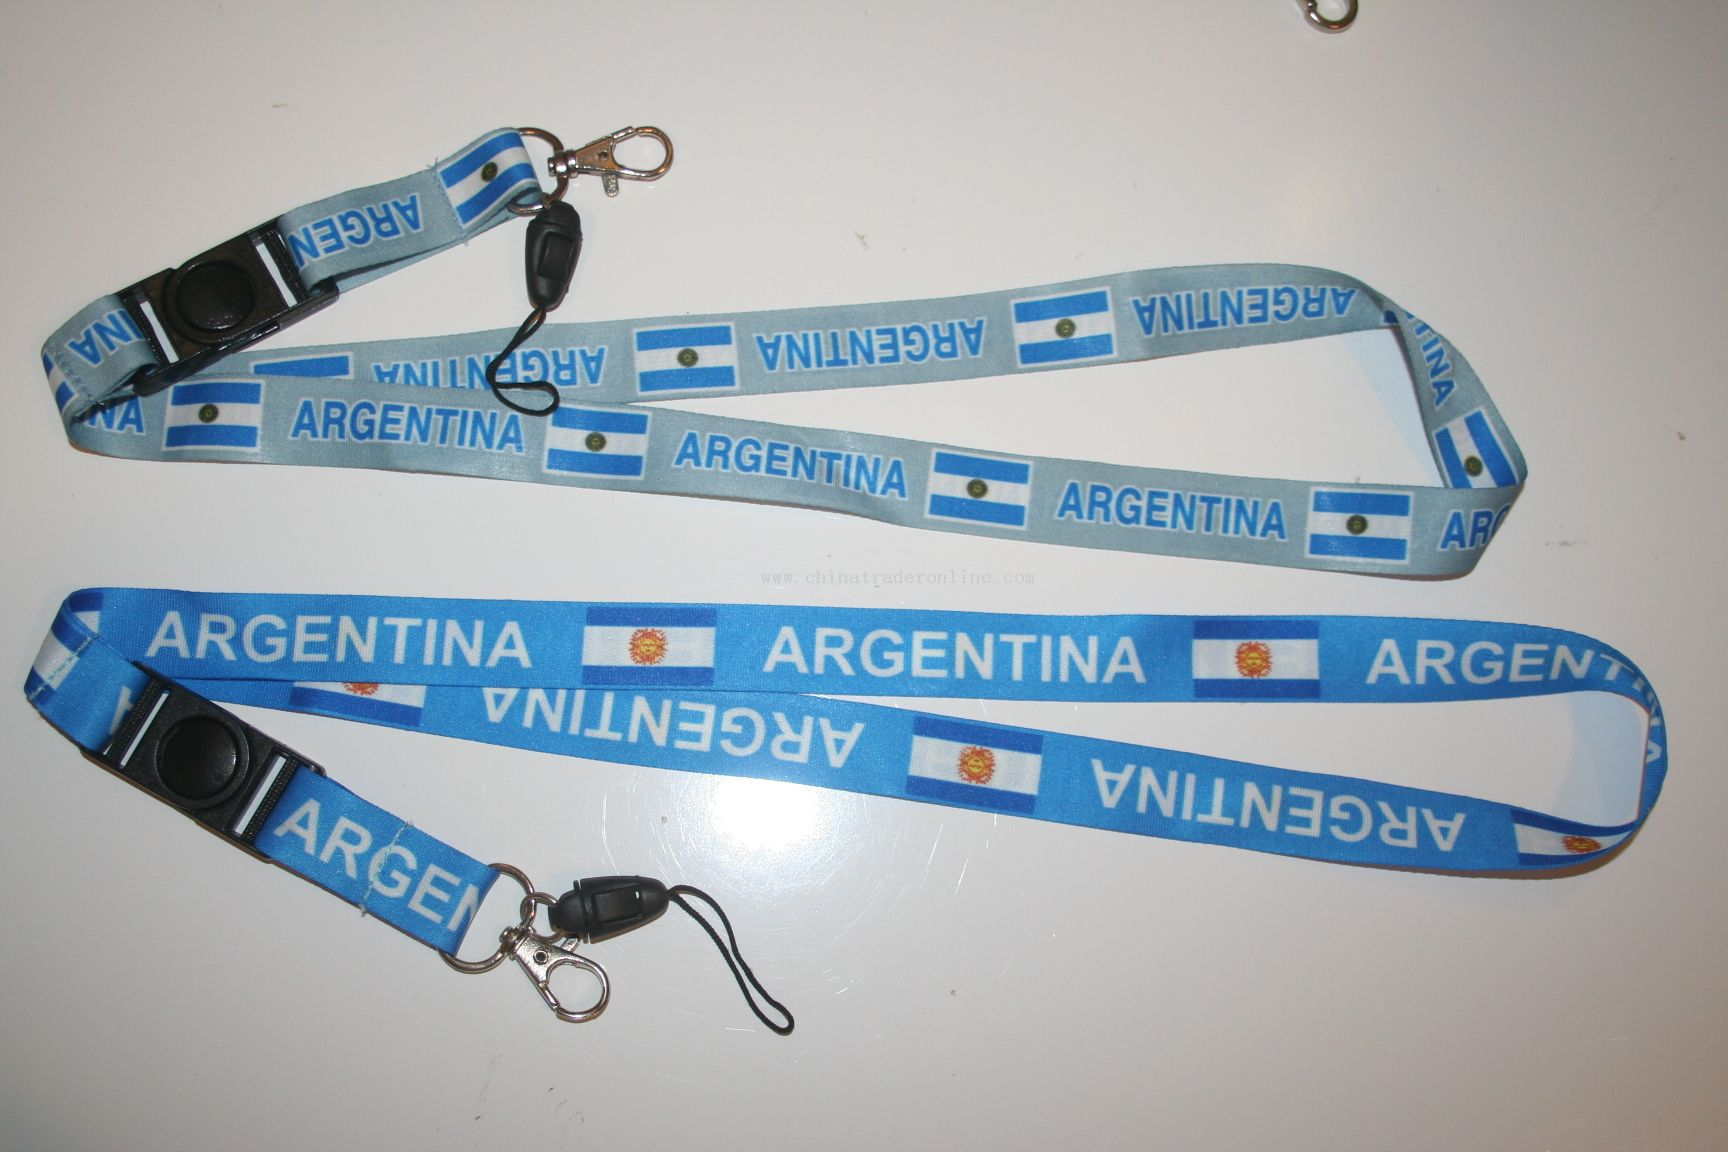 ARGENTINA COUNTRY FLAG LANYARDS KEYCHAINS PASSHOLDERS FIFA WORLD CUP SOCCER FOOTBALL from China